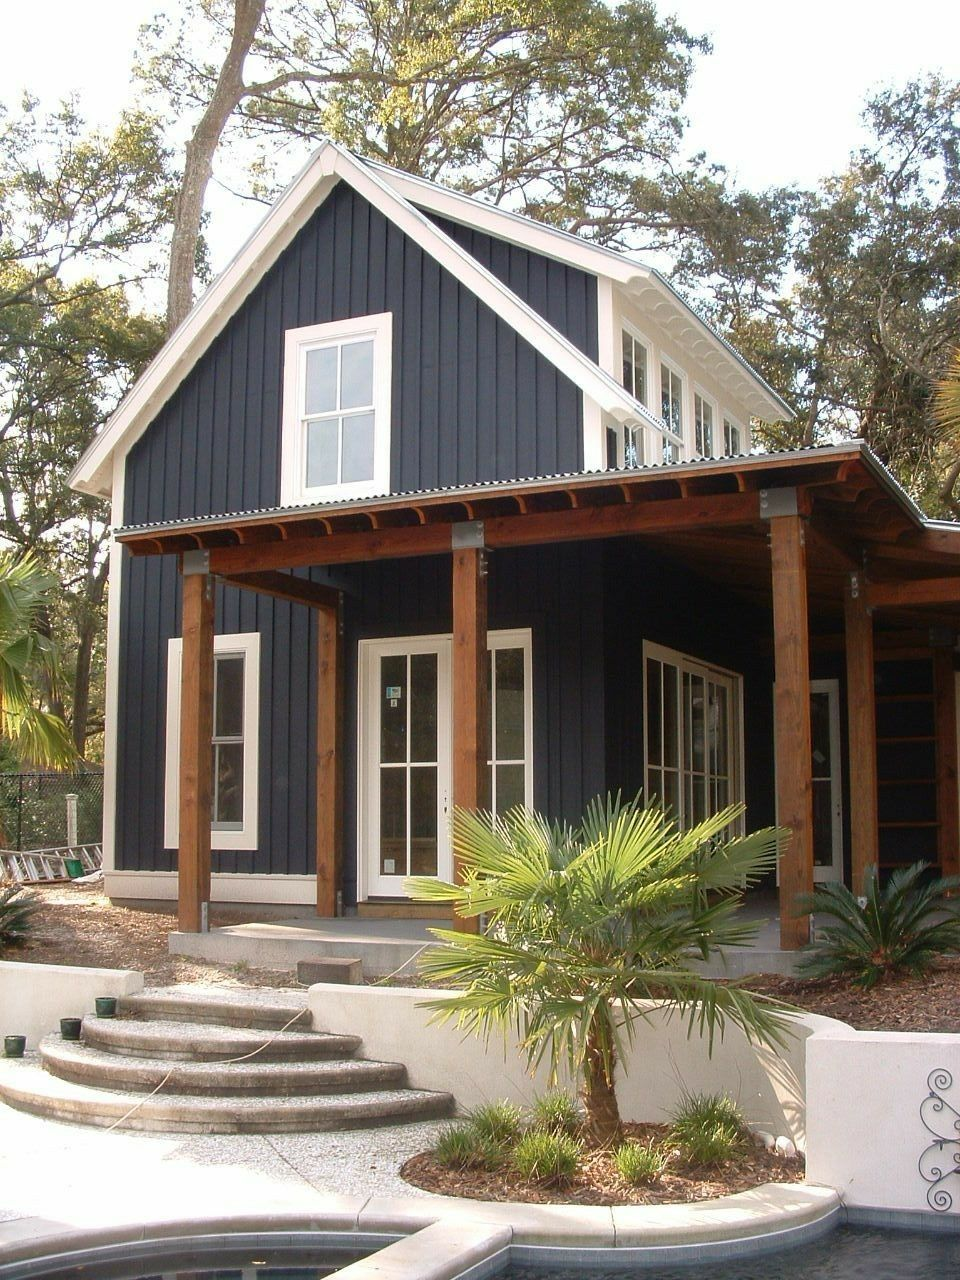 Vertical Siding With Metal Roof Modern Farmhouse Exterior Exterior House Colors Farmhouse Exterior